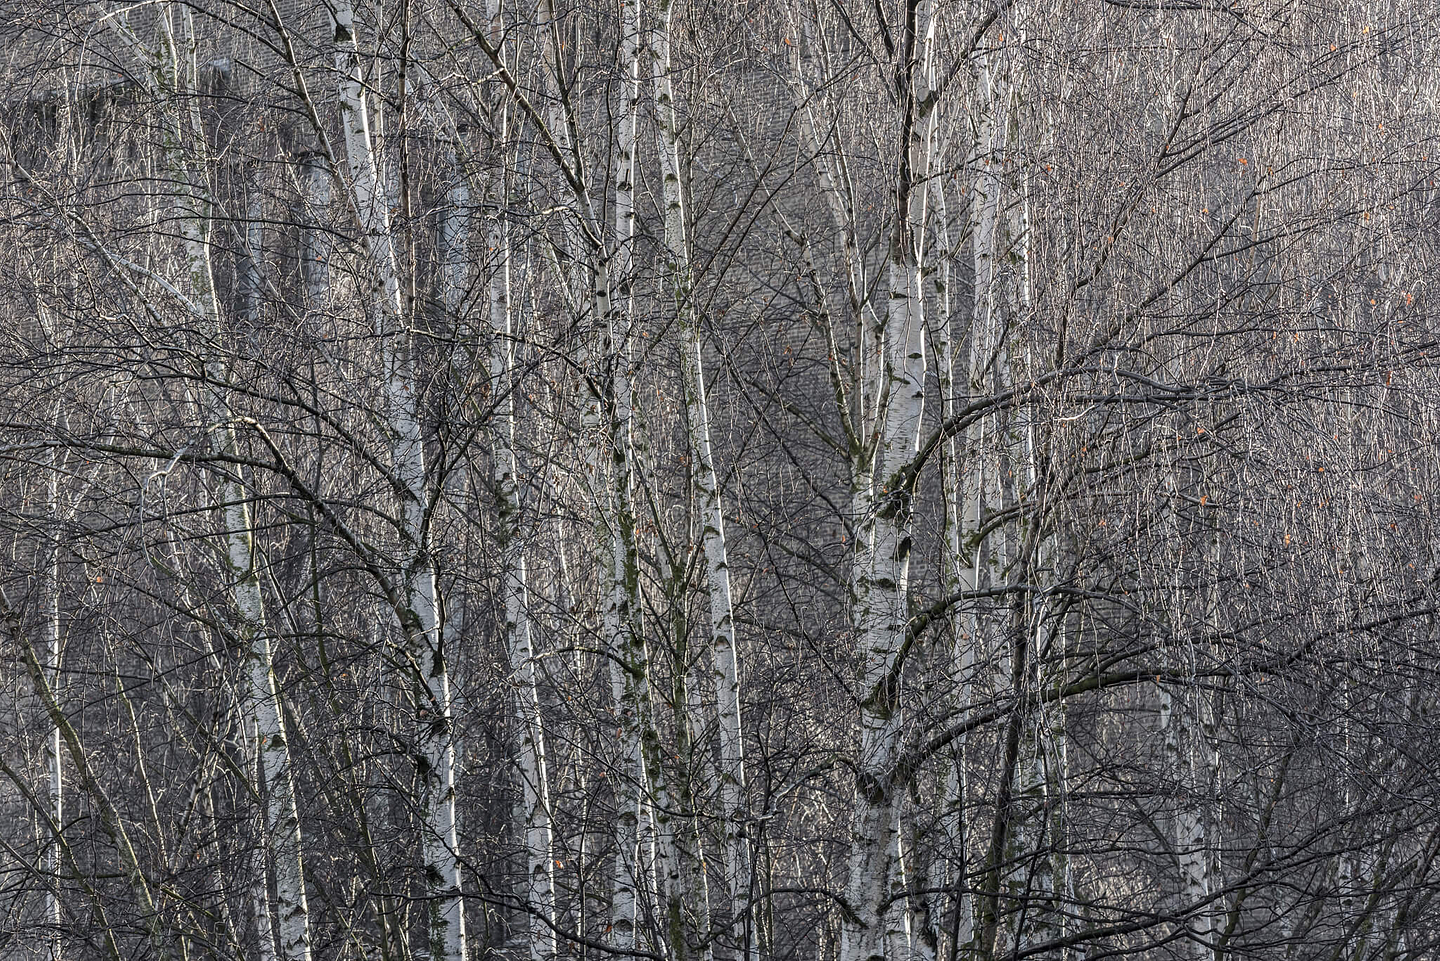 Silver birch trees in the sun, Southbank